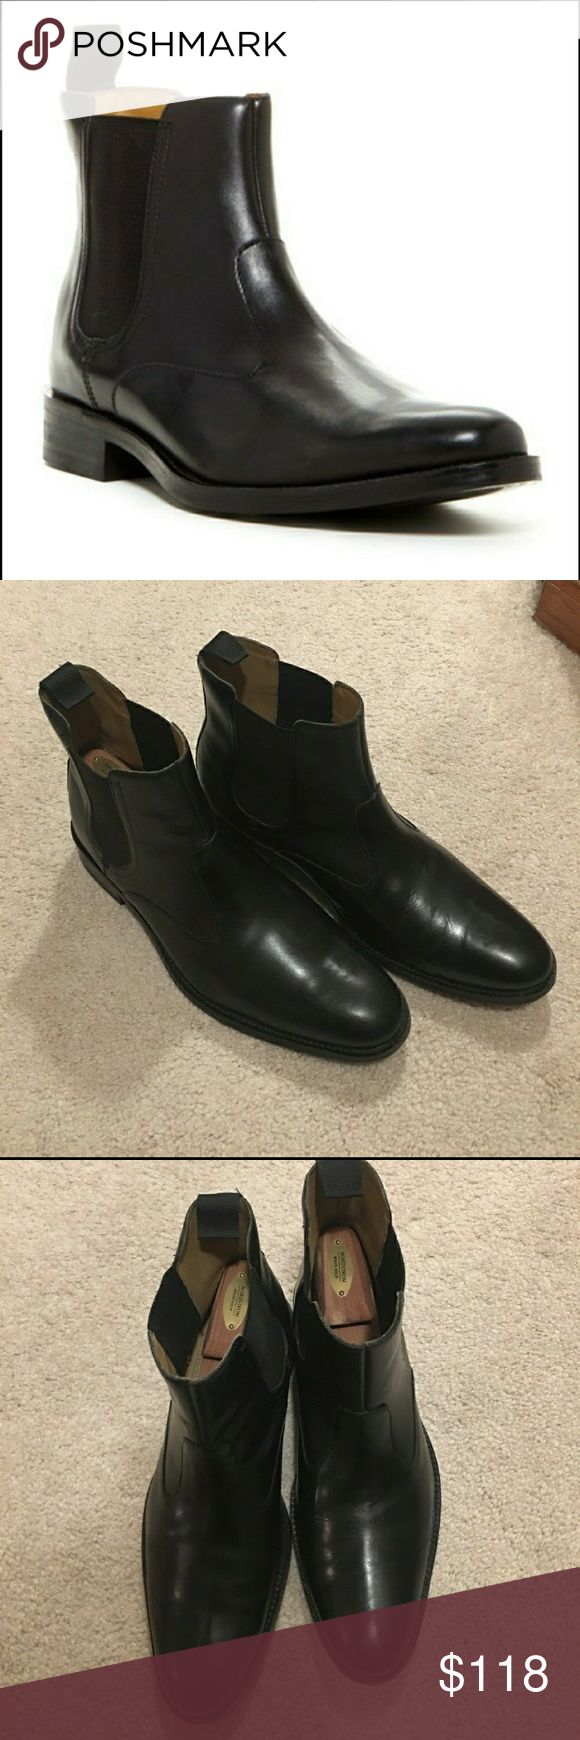 Cole Haans Mens Boots Worn a few times, wear is visible in the pictures. They are in great shape. No scratches or scuffs in the leather. Cole Haan Shoes Boots